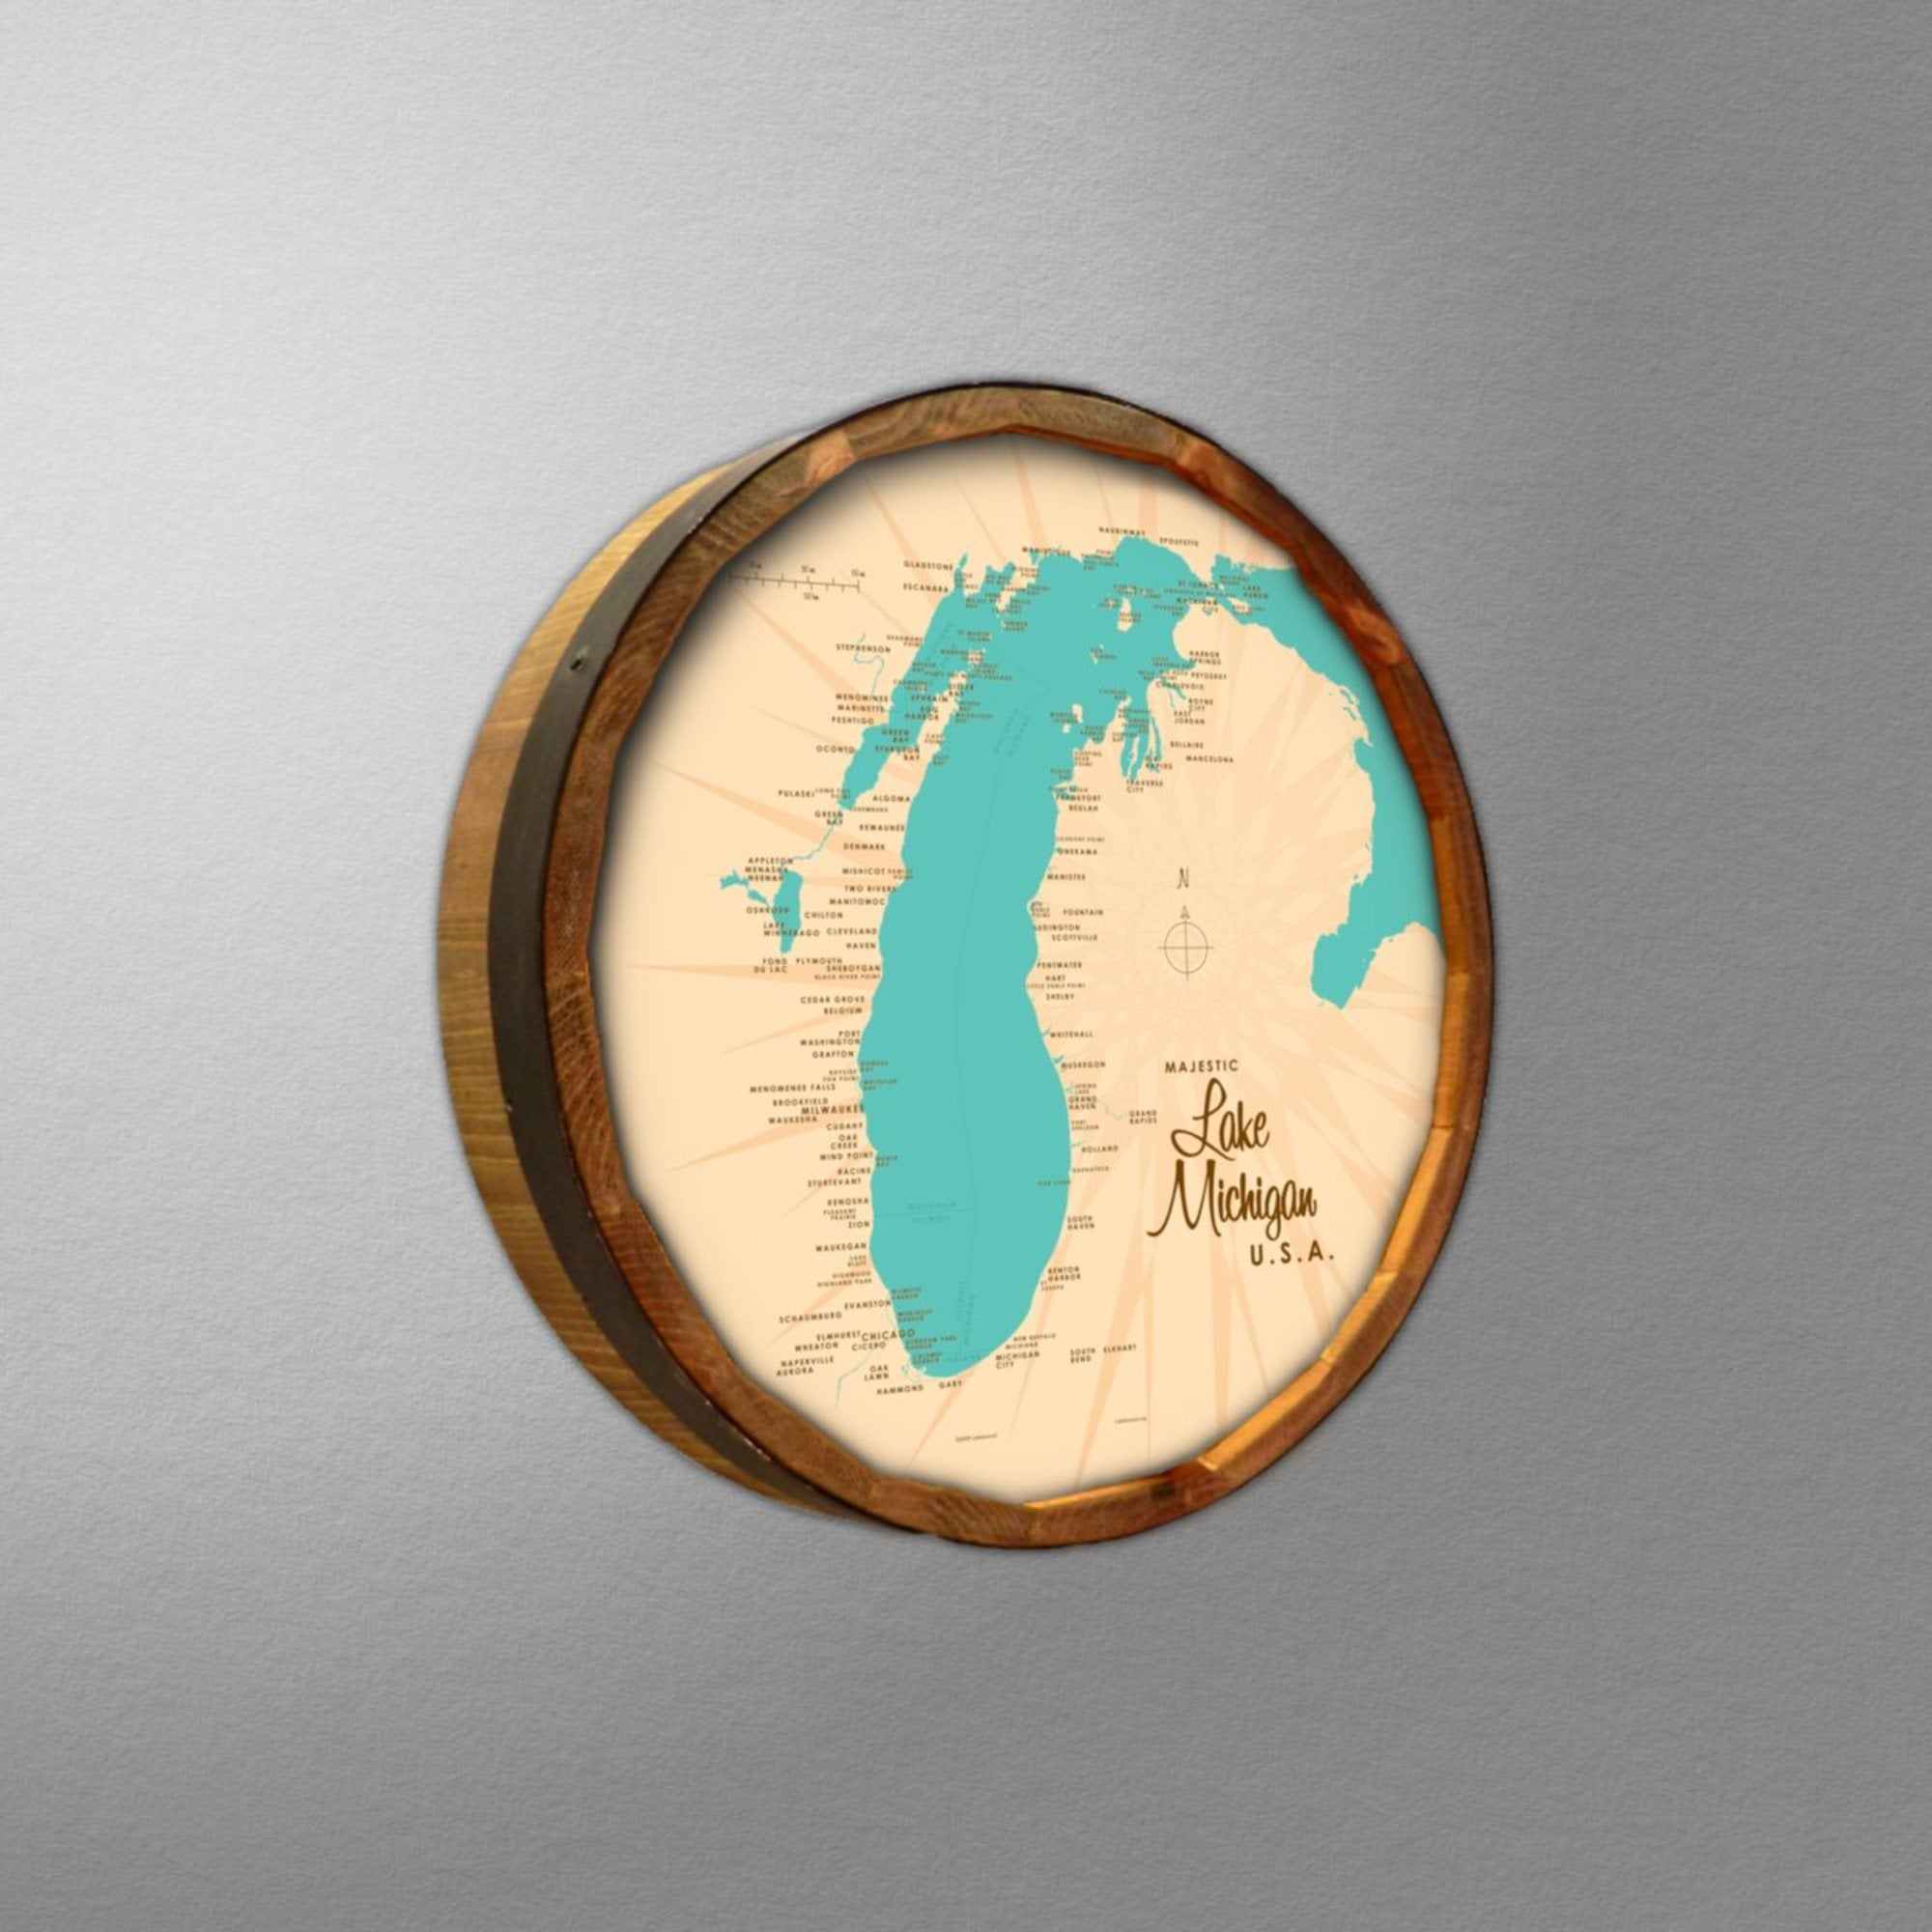 Lake Michigan Michigan, Barrel End Map Art